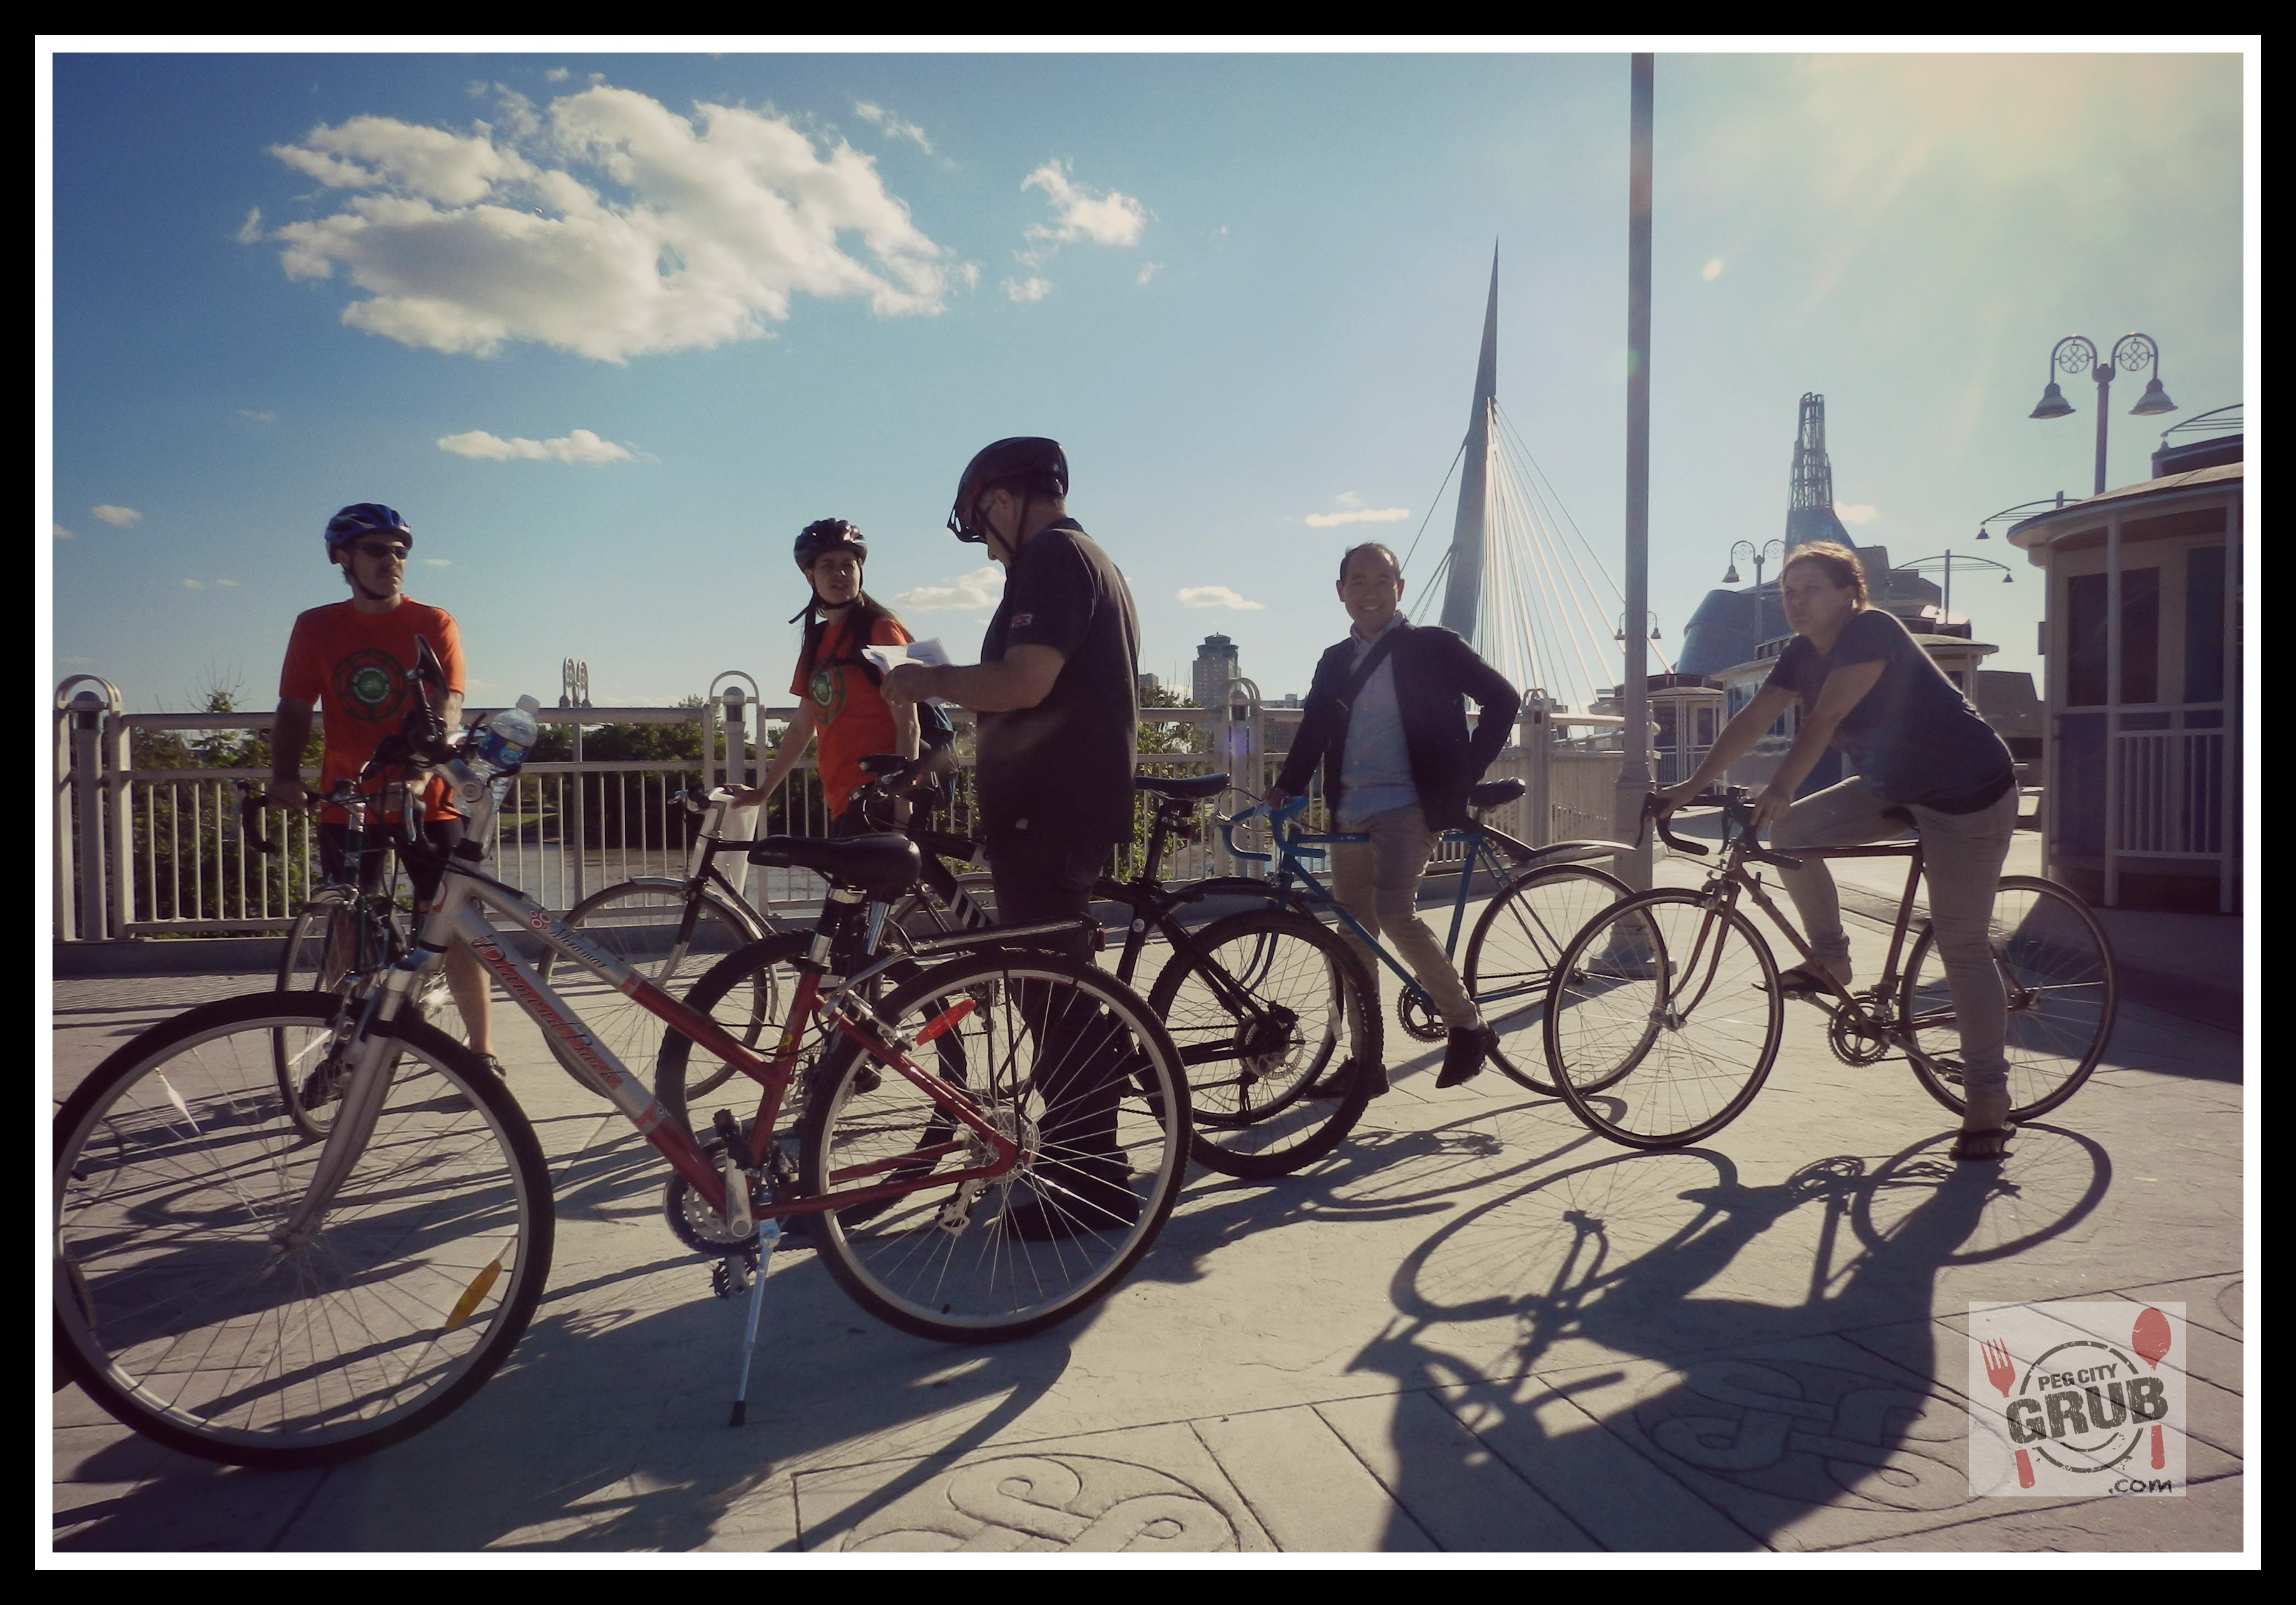 Cyclists take in the sights of downtown Winnipeg at St. Boniface during Moveable Feast 2013. (Photo by Robin Summerfield)